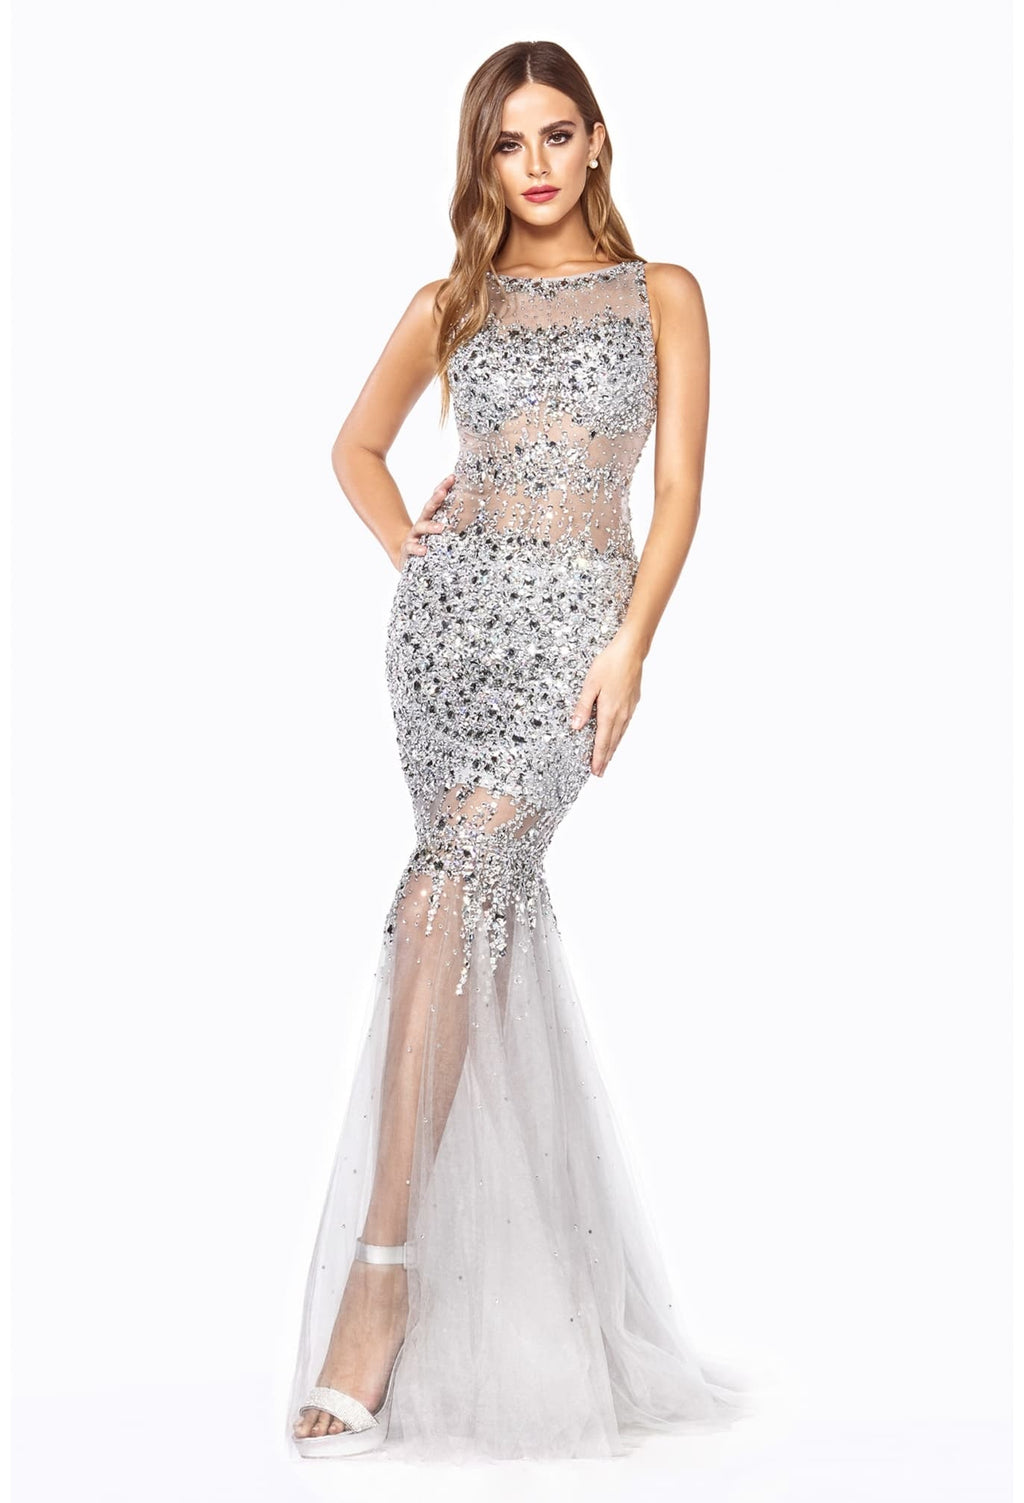 Fully Hand-Beaded Mermaid Fit & Flare Novelty Gown - KC Haute Couture Wedding Dress